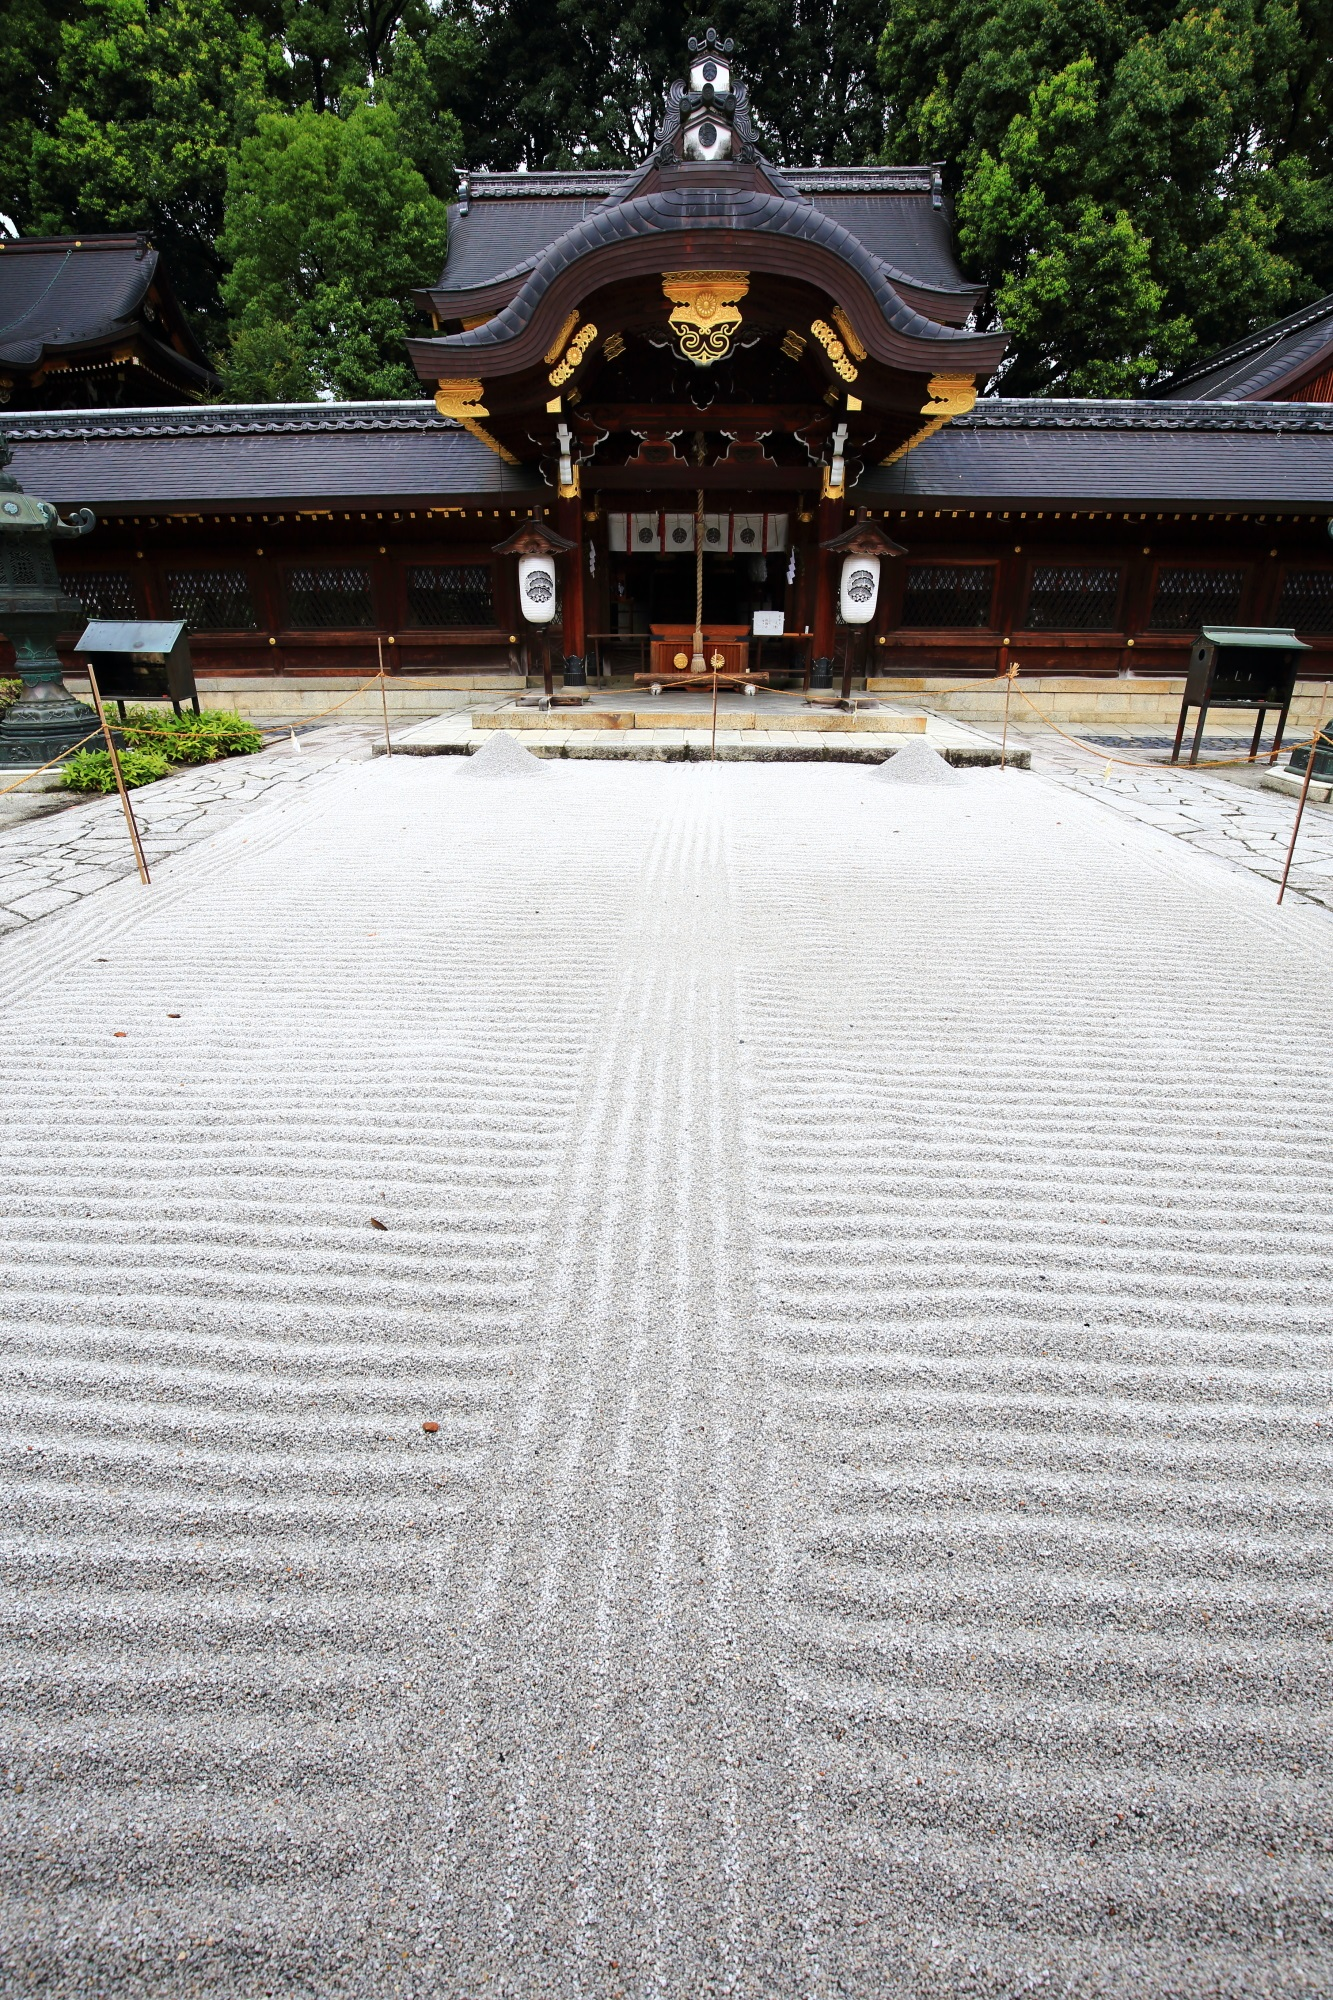 Imamiya shrine Kyoto